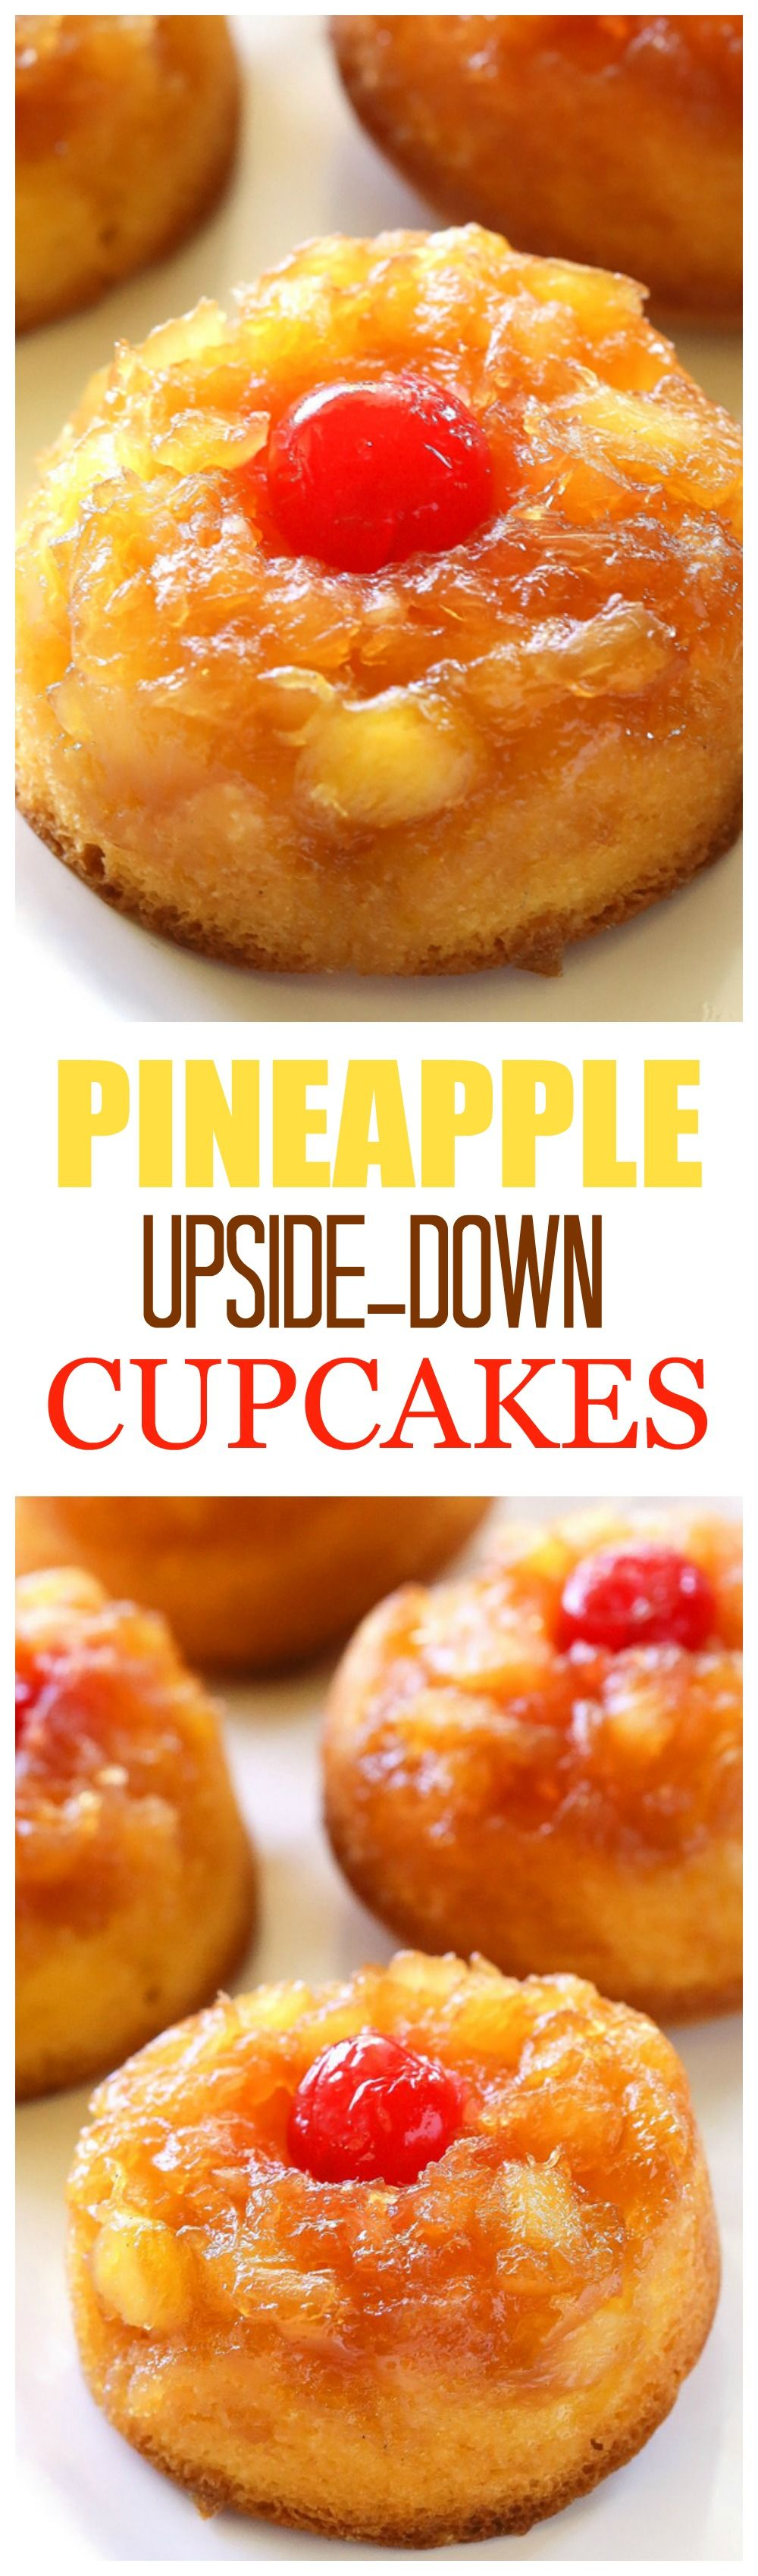 Pineapple Upside Down Cupcakes The Girl Who Ate Everything Recipe Pineapple Upside Down Cupcakes Desserts Cupcake Cakes